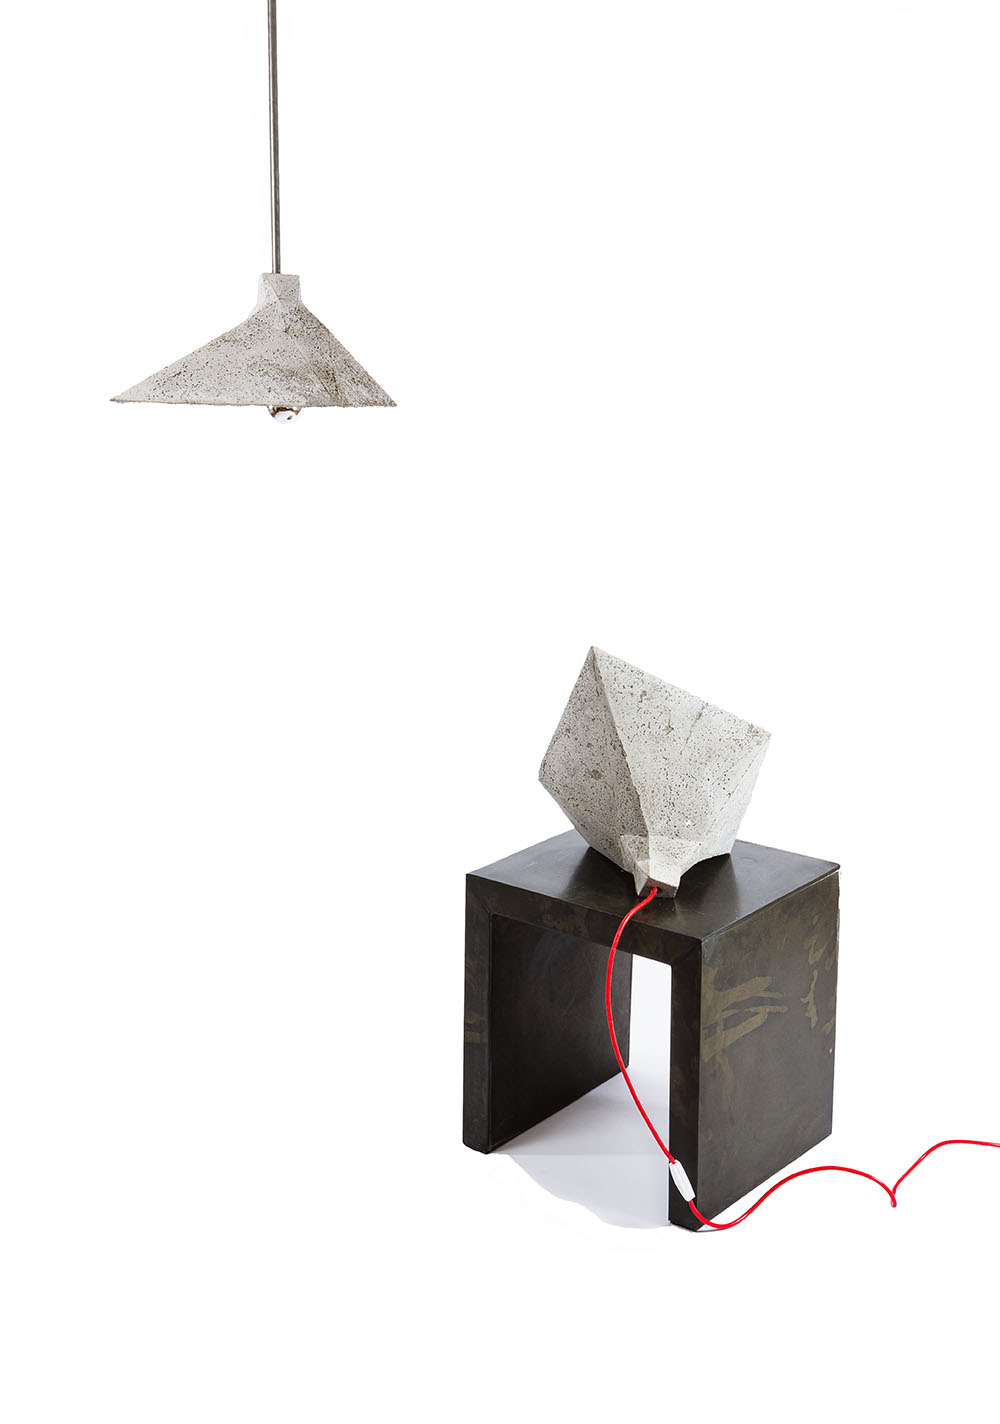 SHADOK concrete table lamp and pendant light